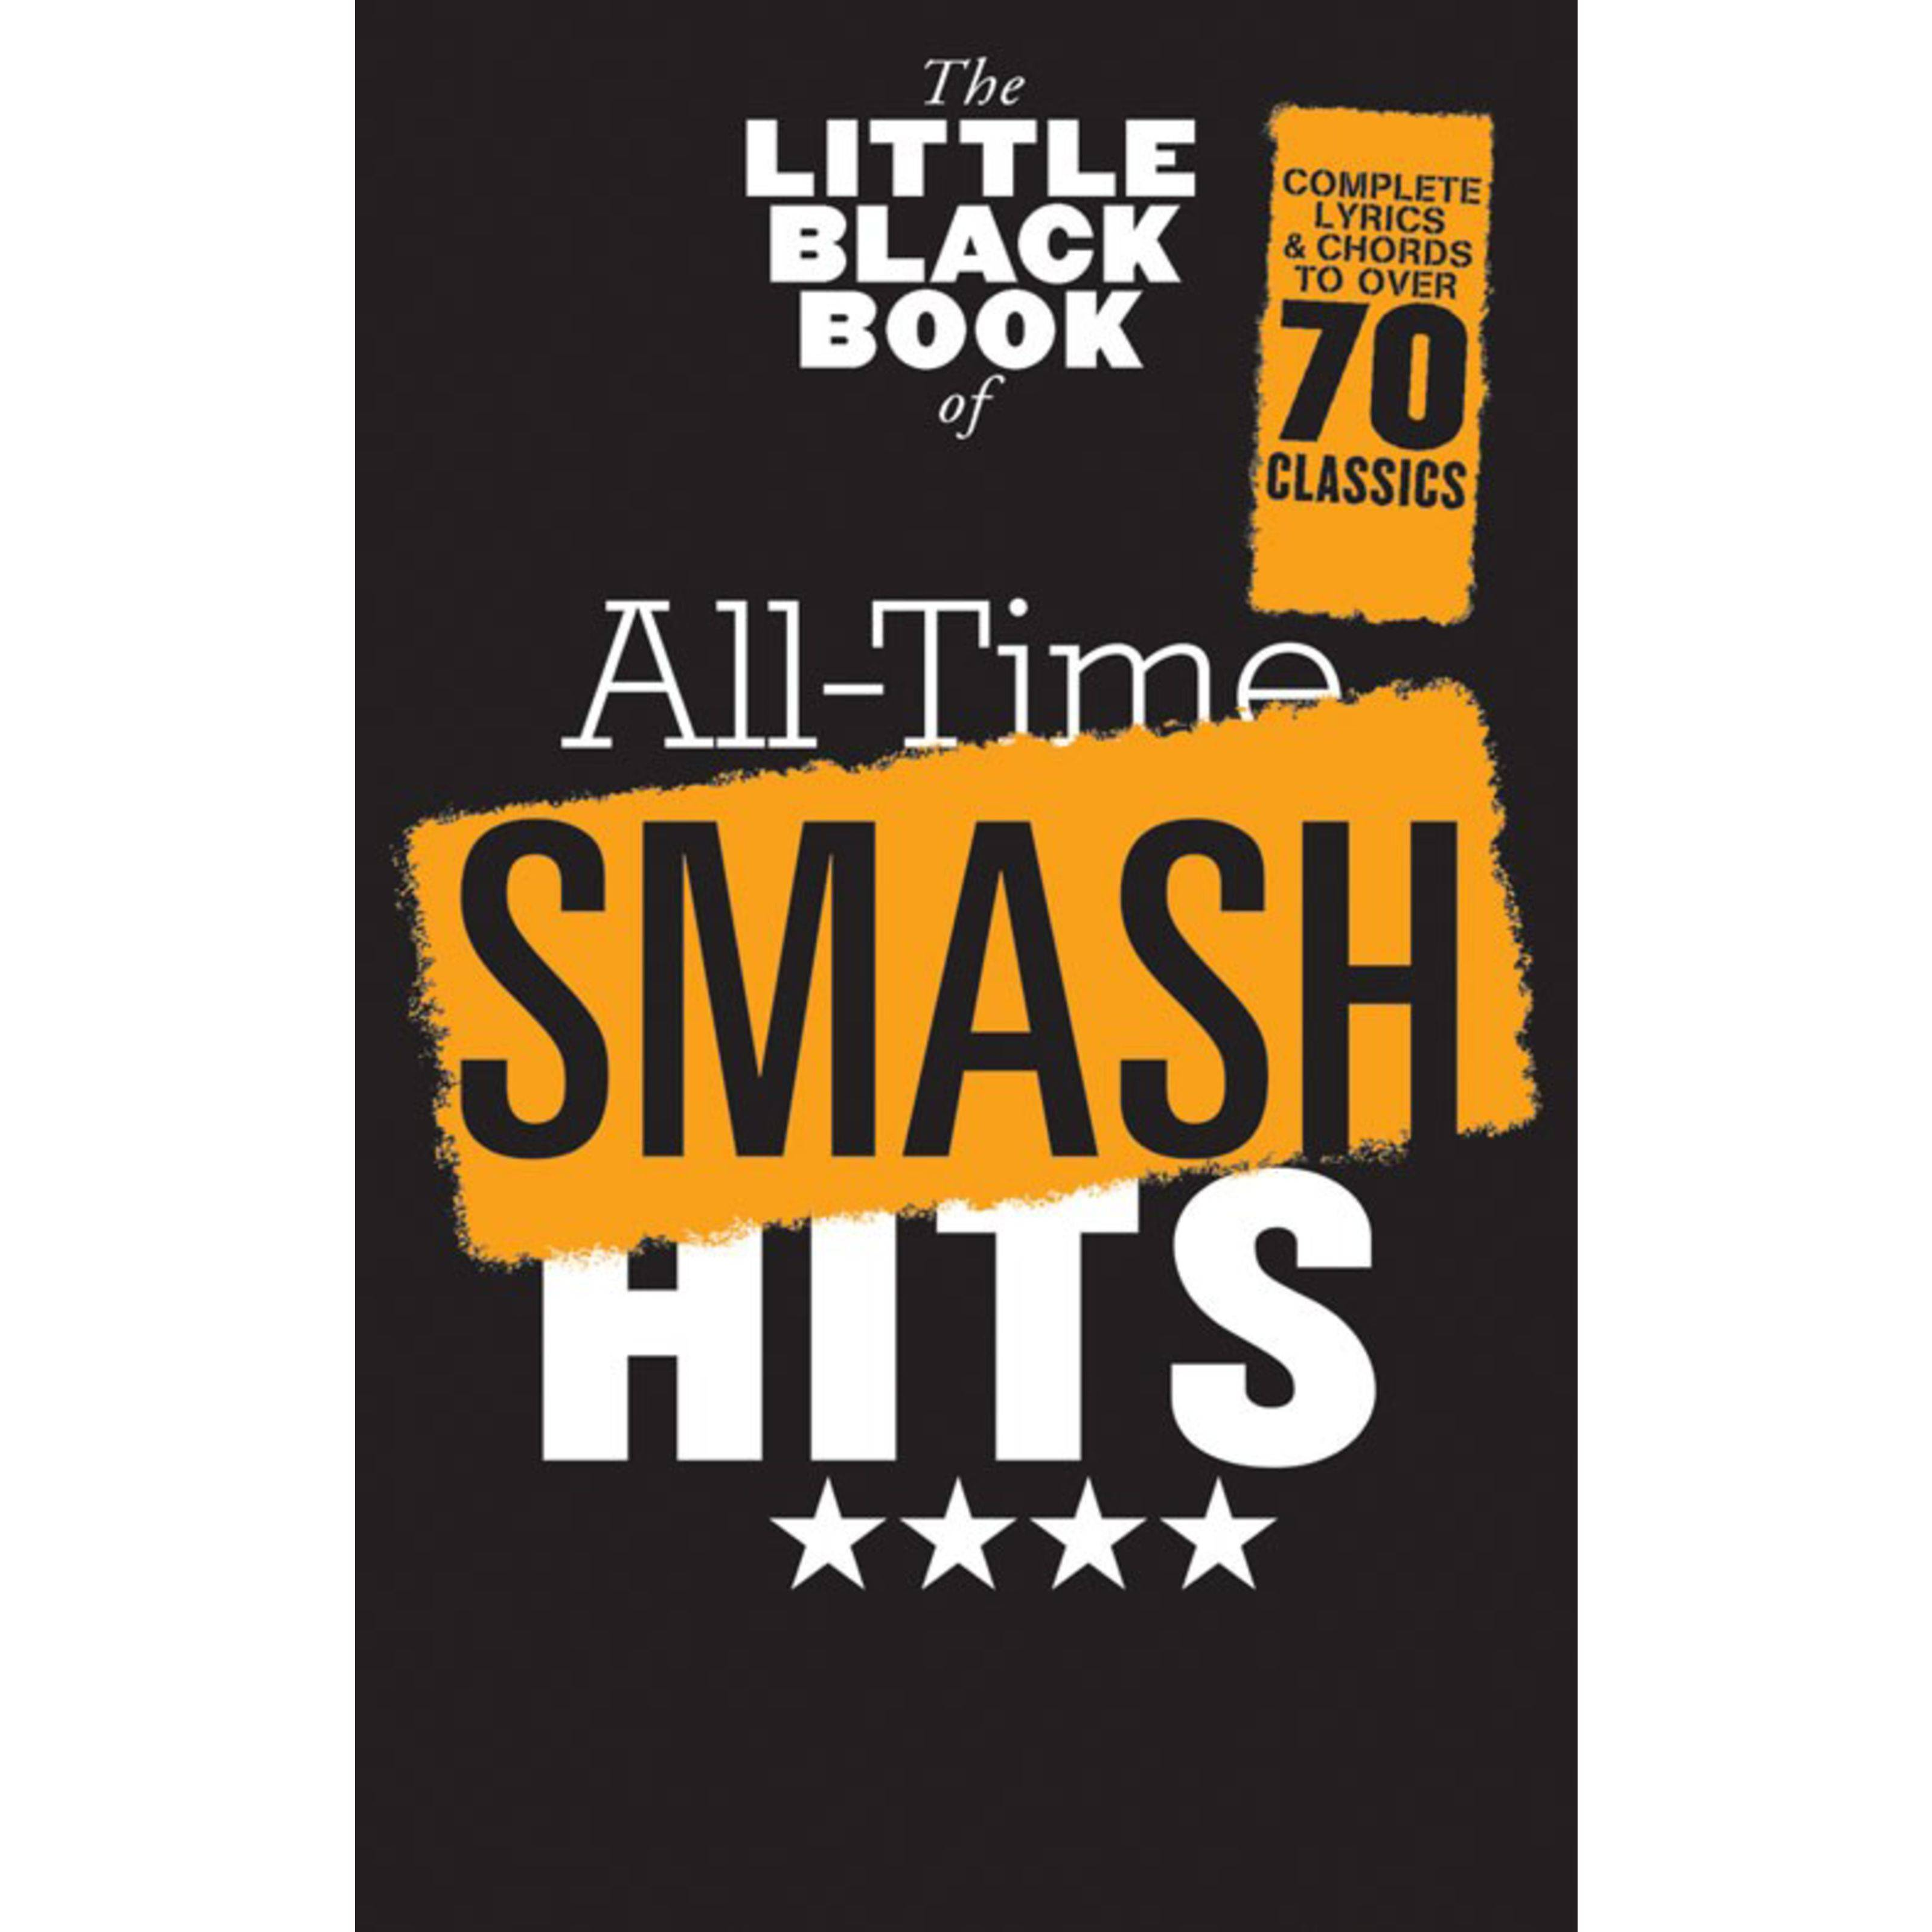 Wise Publications The Little Black Book Of All-Time Smash Hits